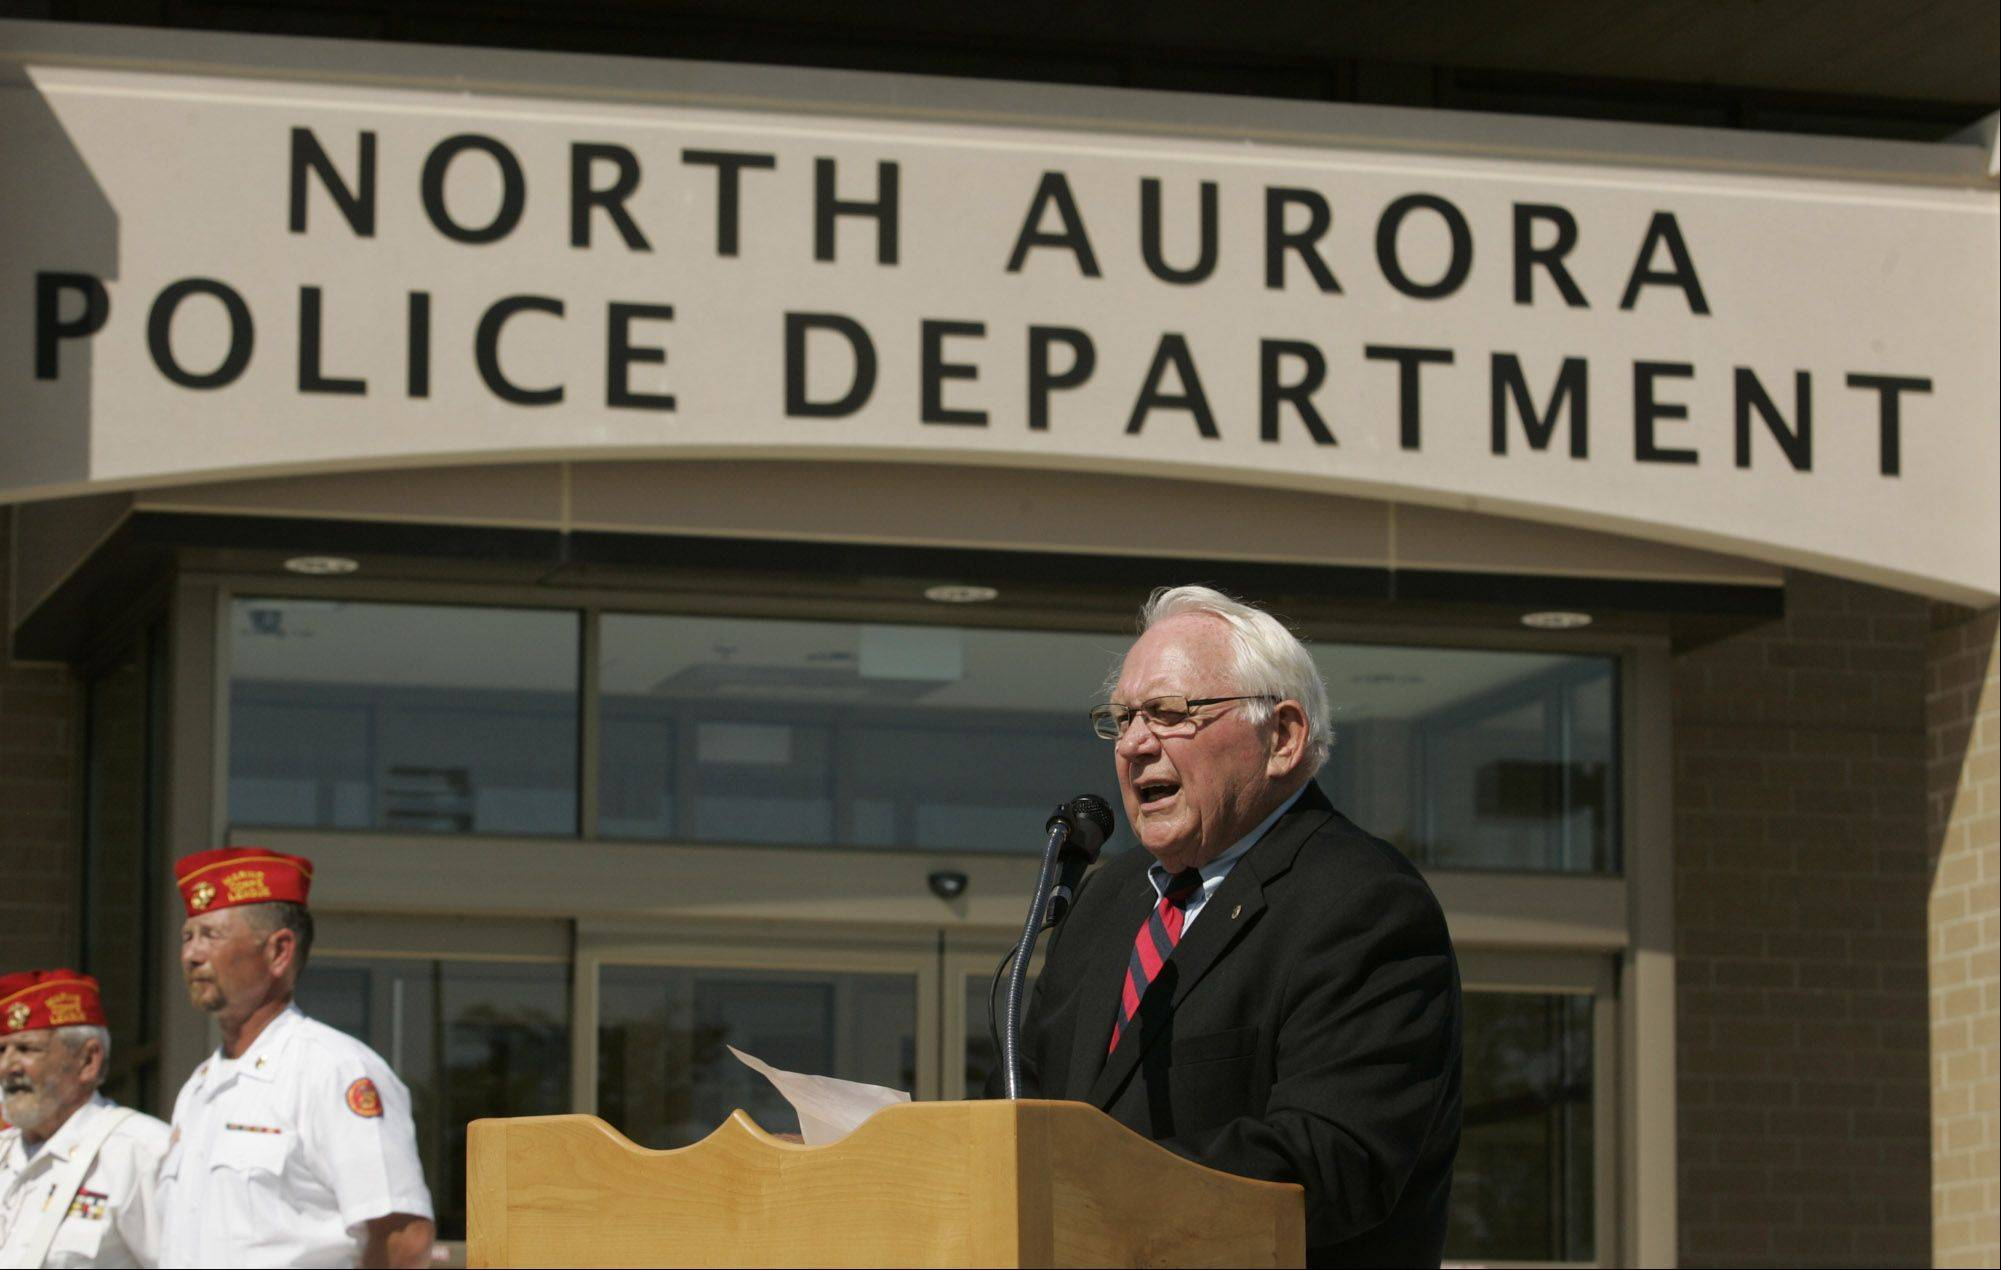 CHRISTOPHER HANKINS/chankins@dailyherald.com North Aurora Village President Dale Berman presides during an open house at the new police station in September 2010.